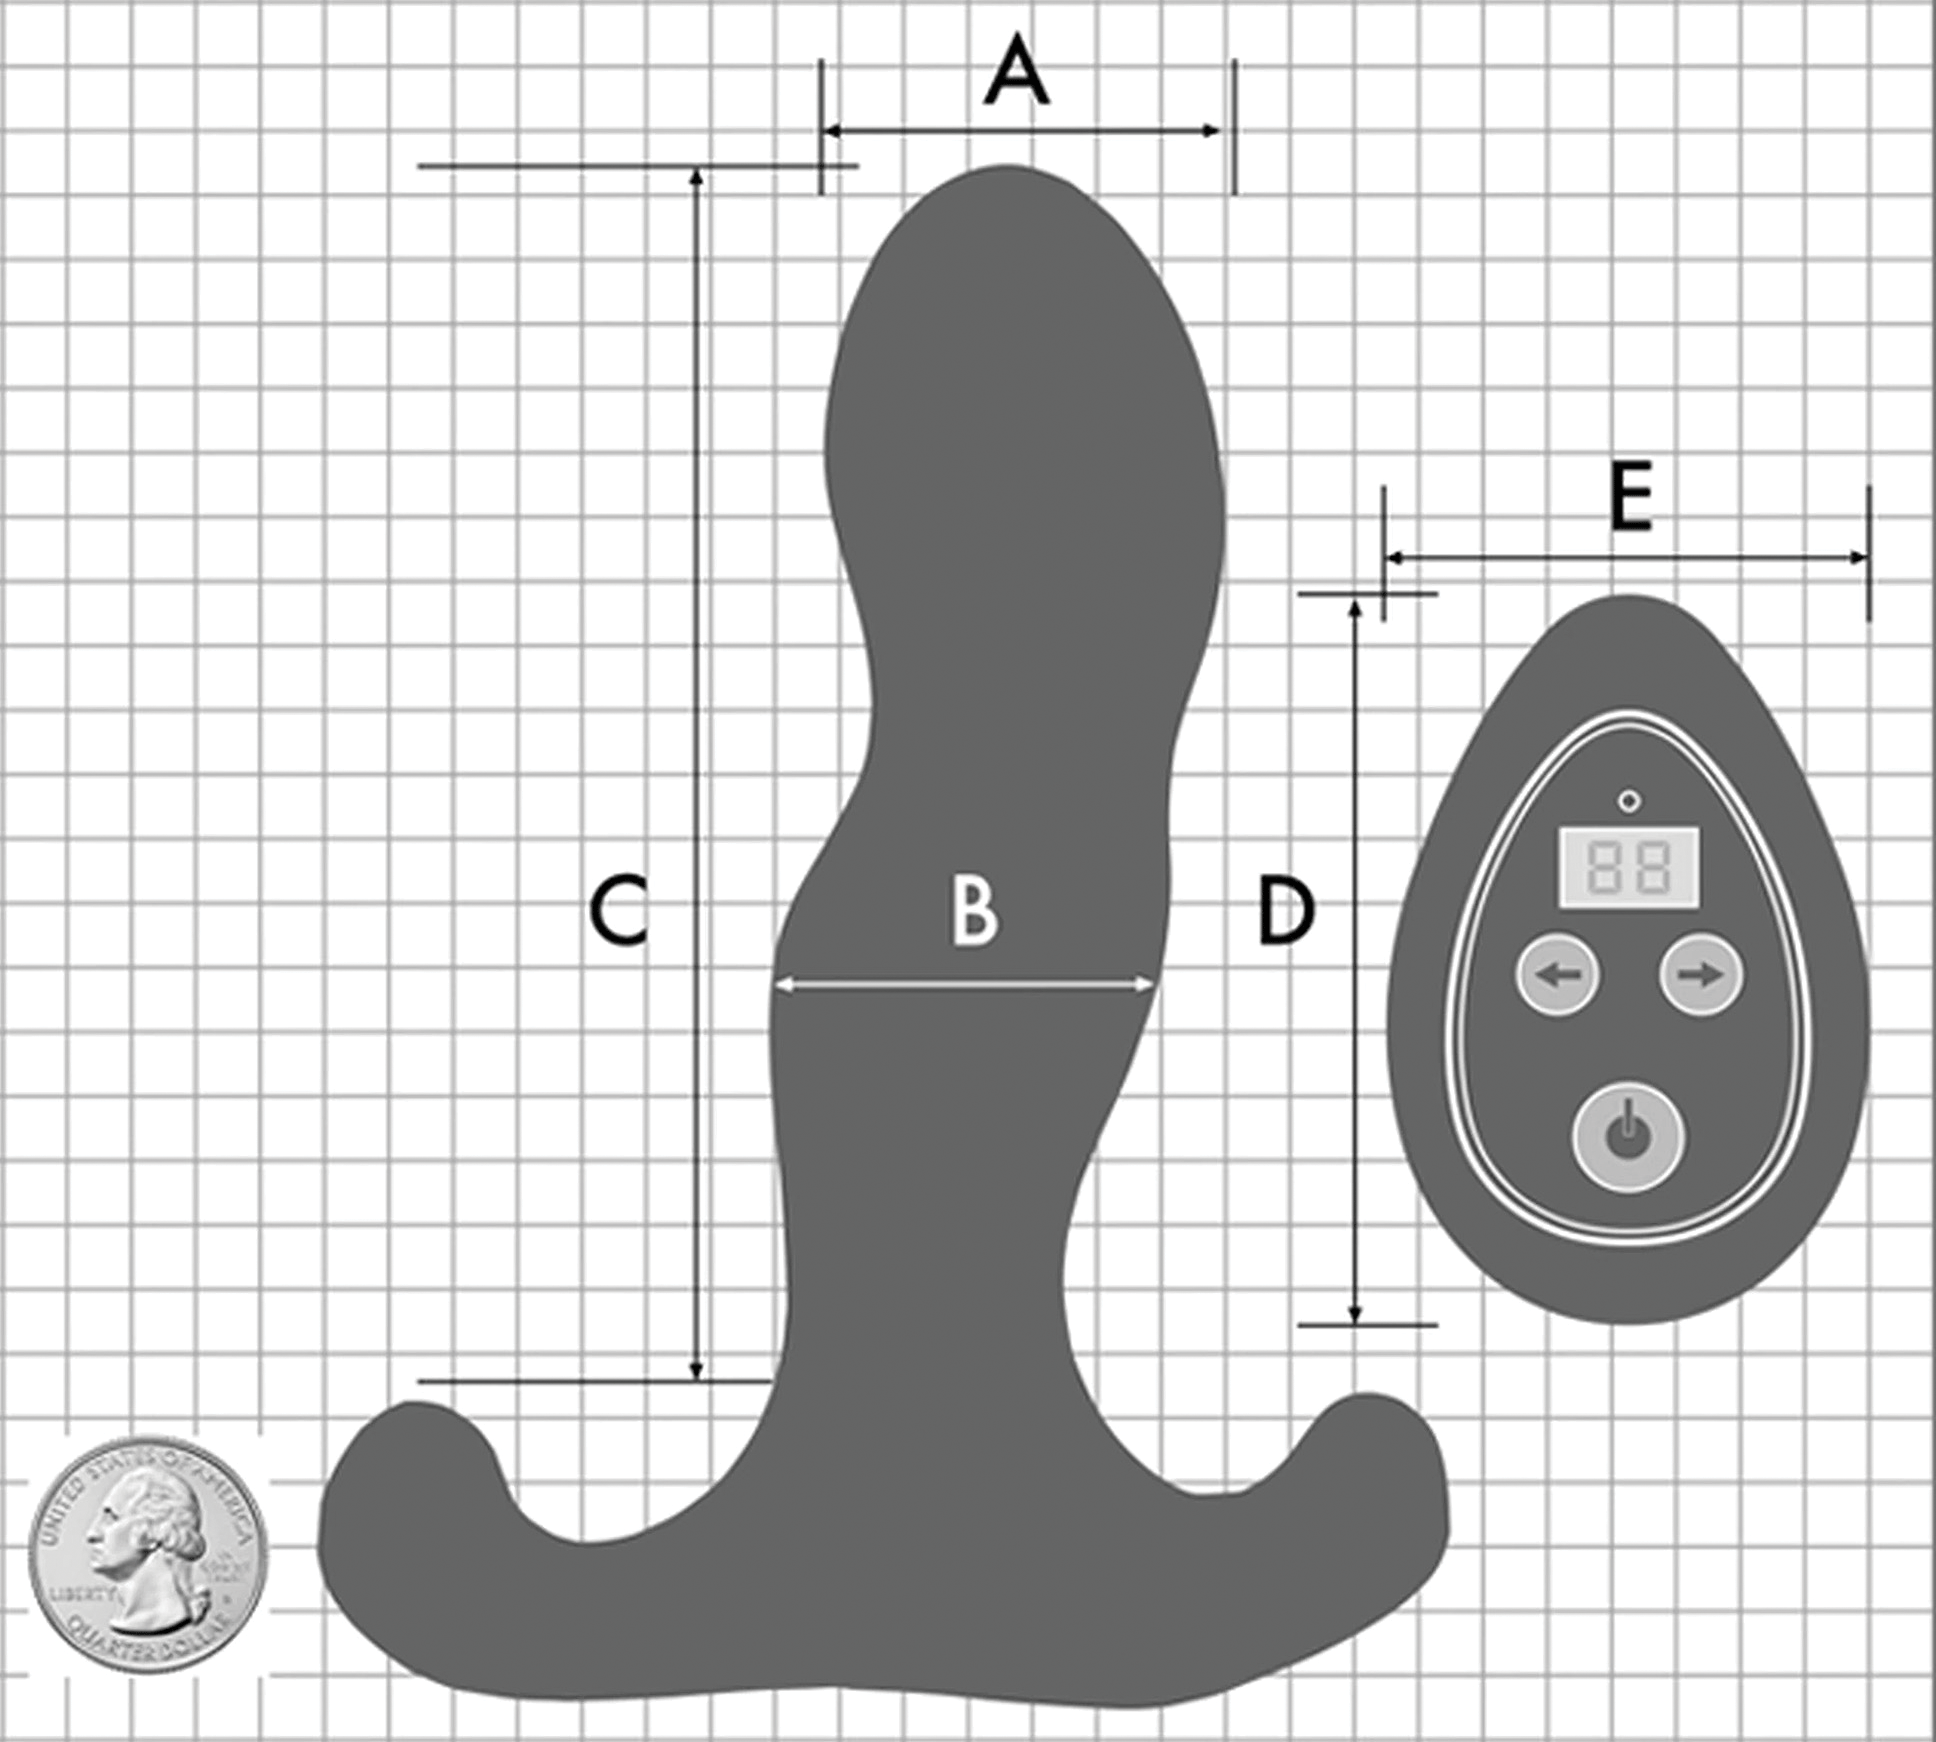 Aneros VICE 2 Vibrating Silicone Prostate Massager - Measurements